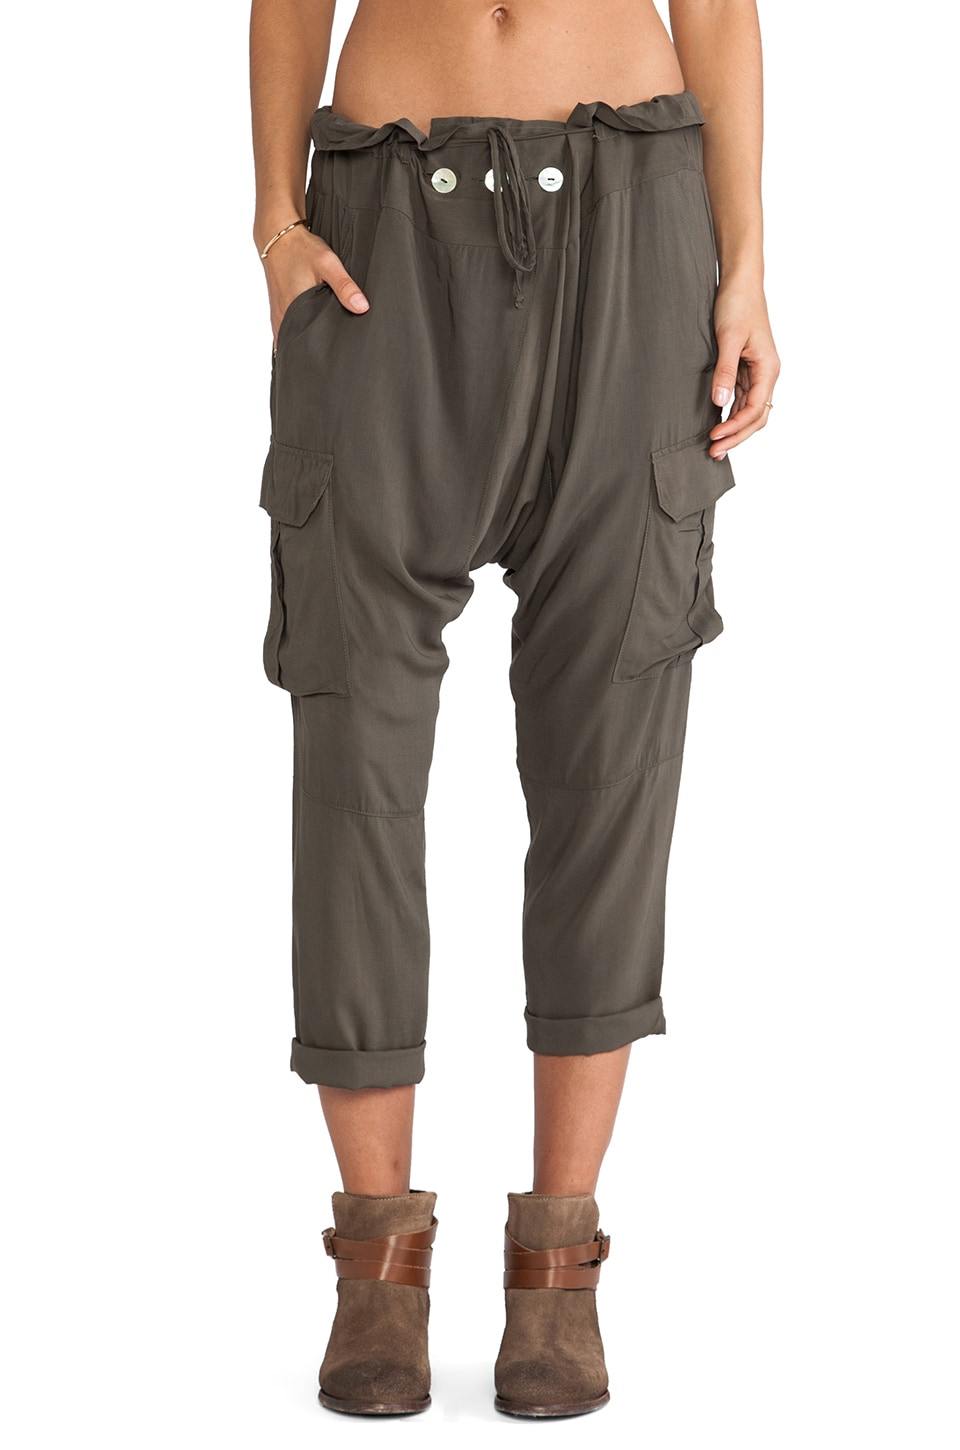 Blue Life Thai One On Pants in Military Green